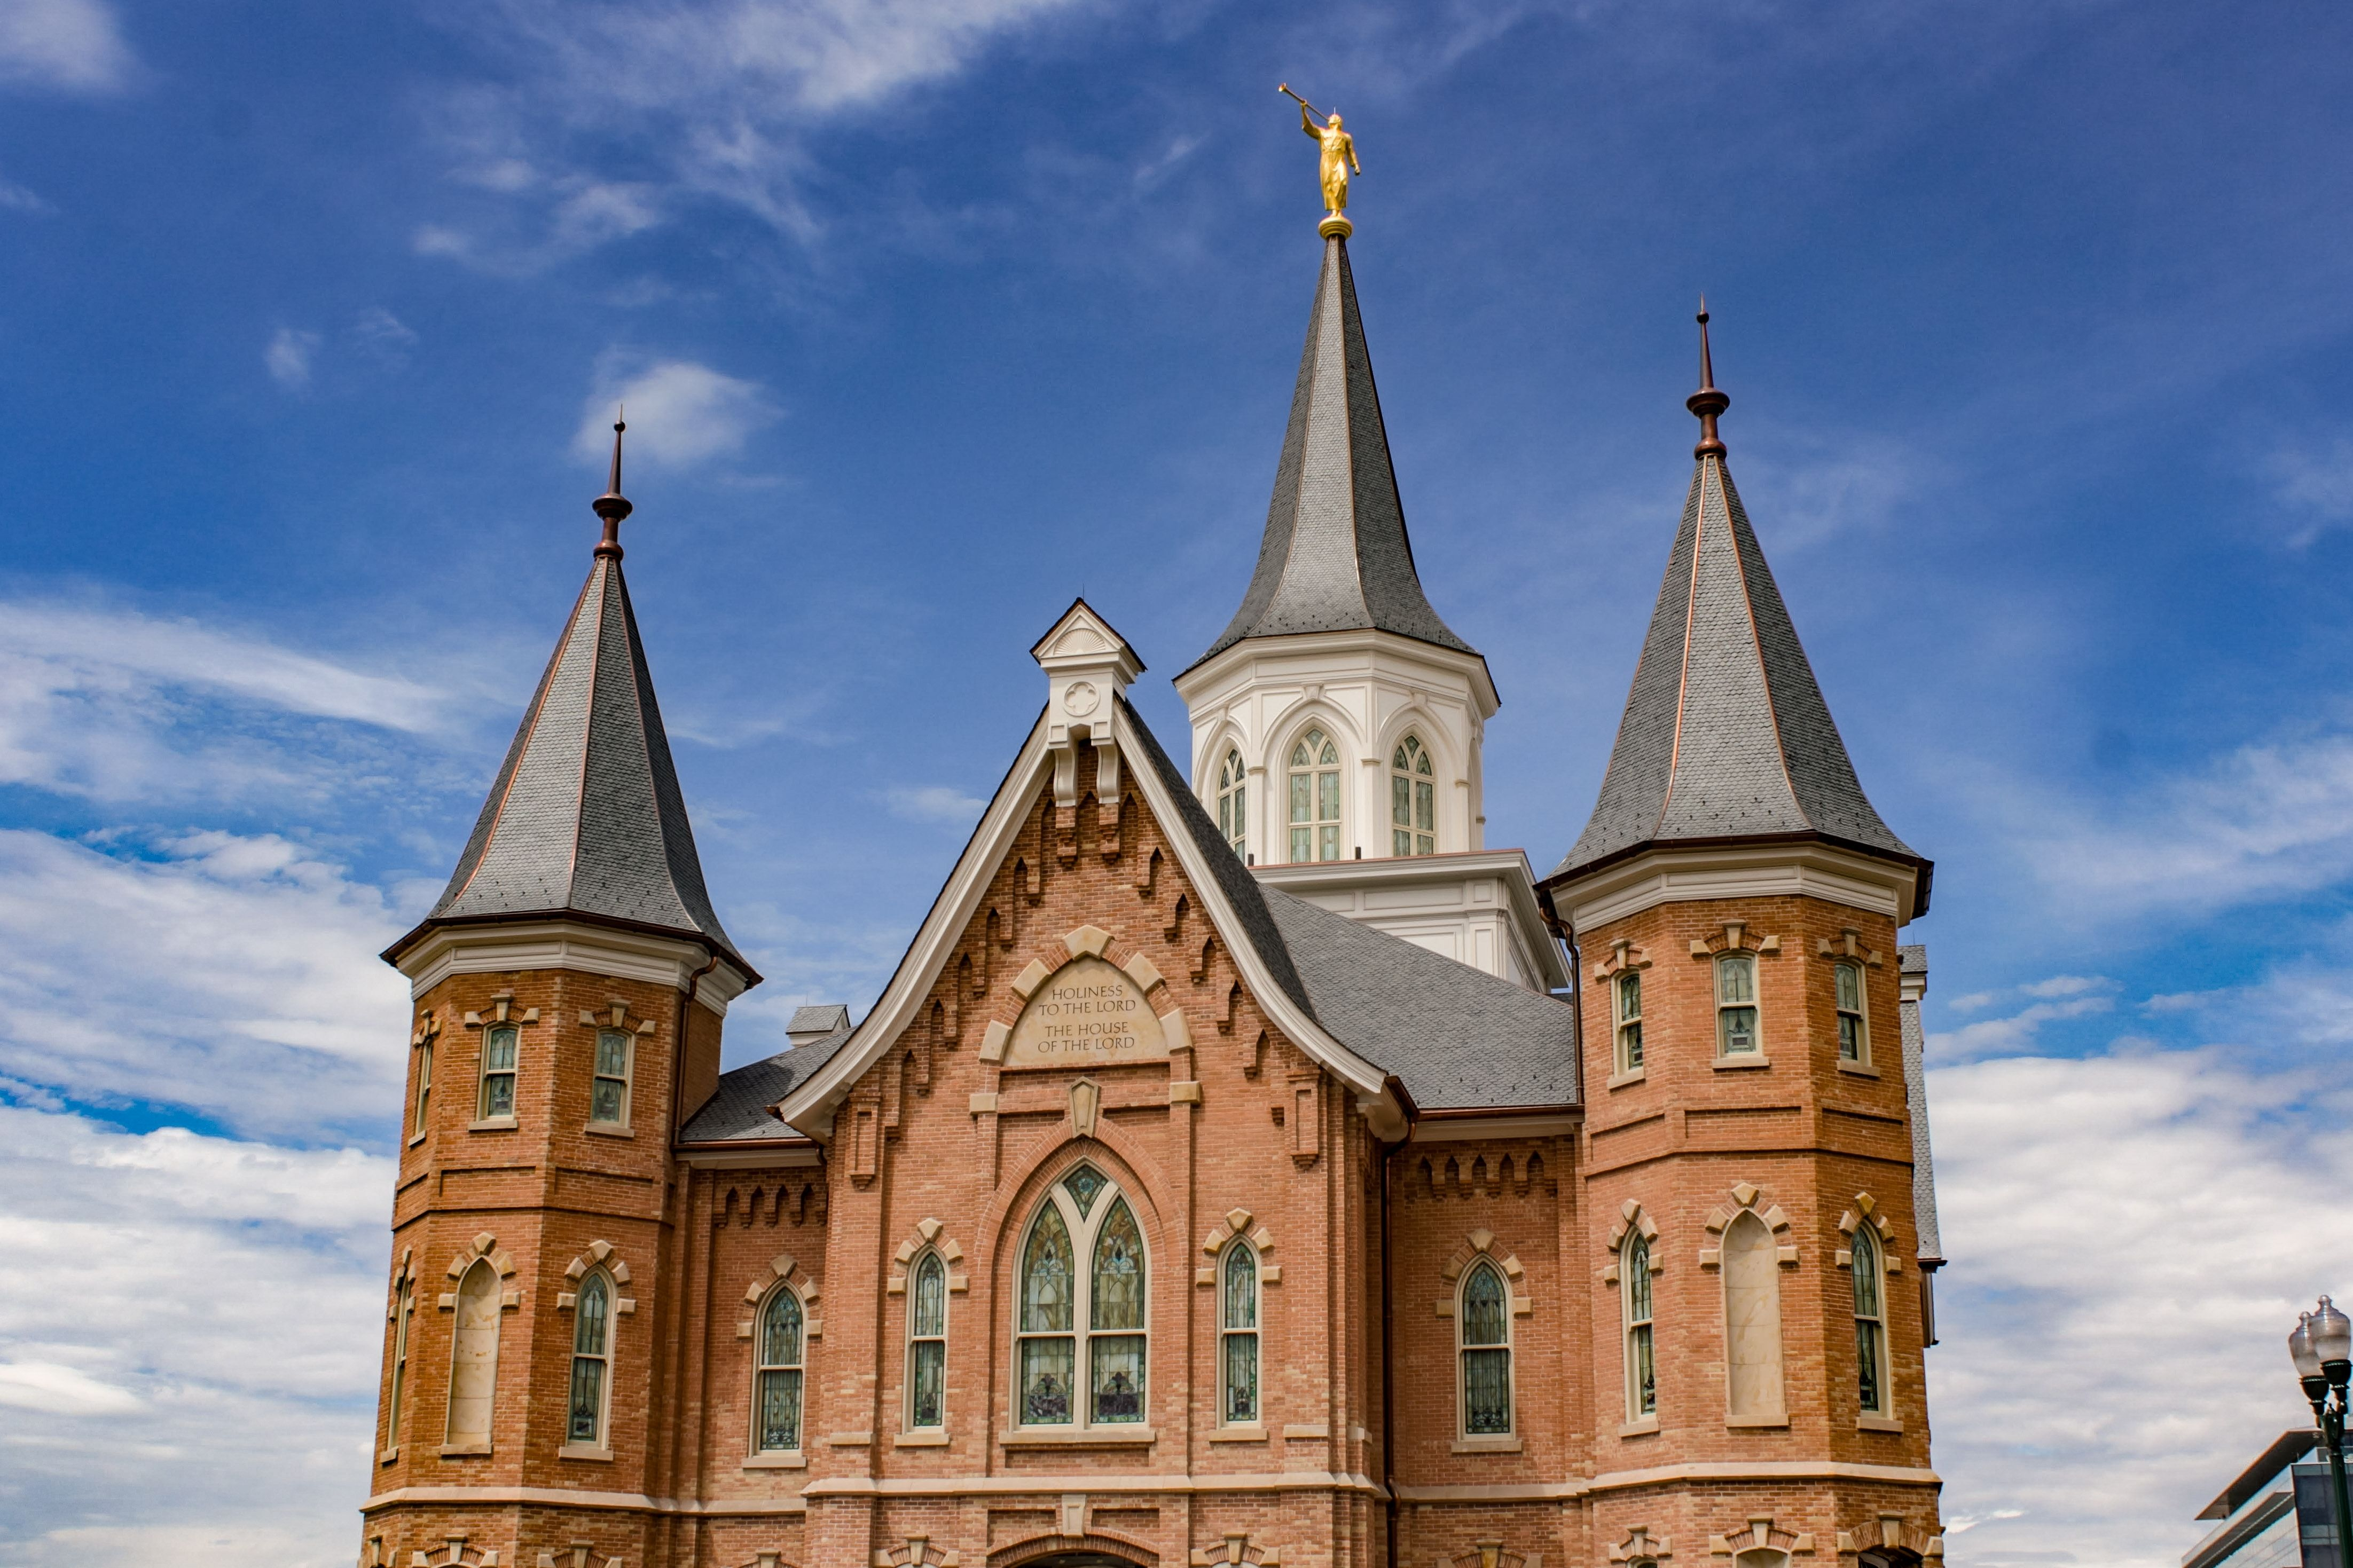 A front view of the Provo City Center Temple during the day.